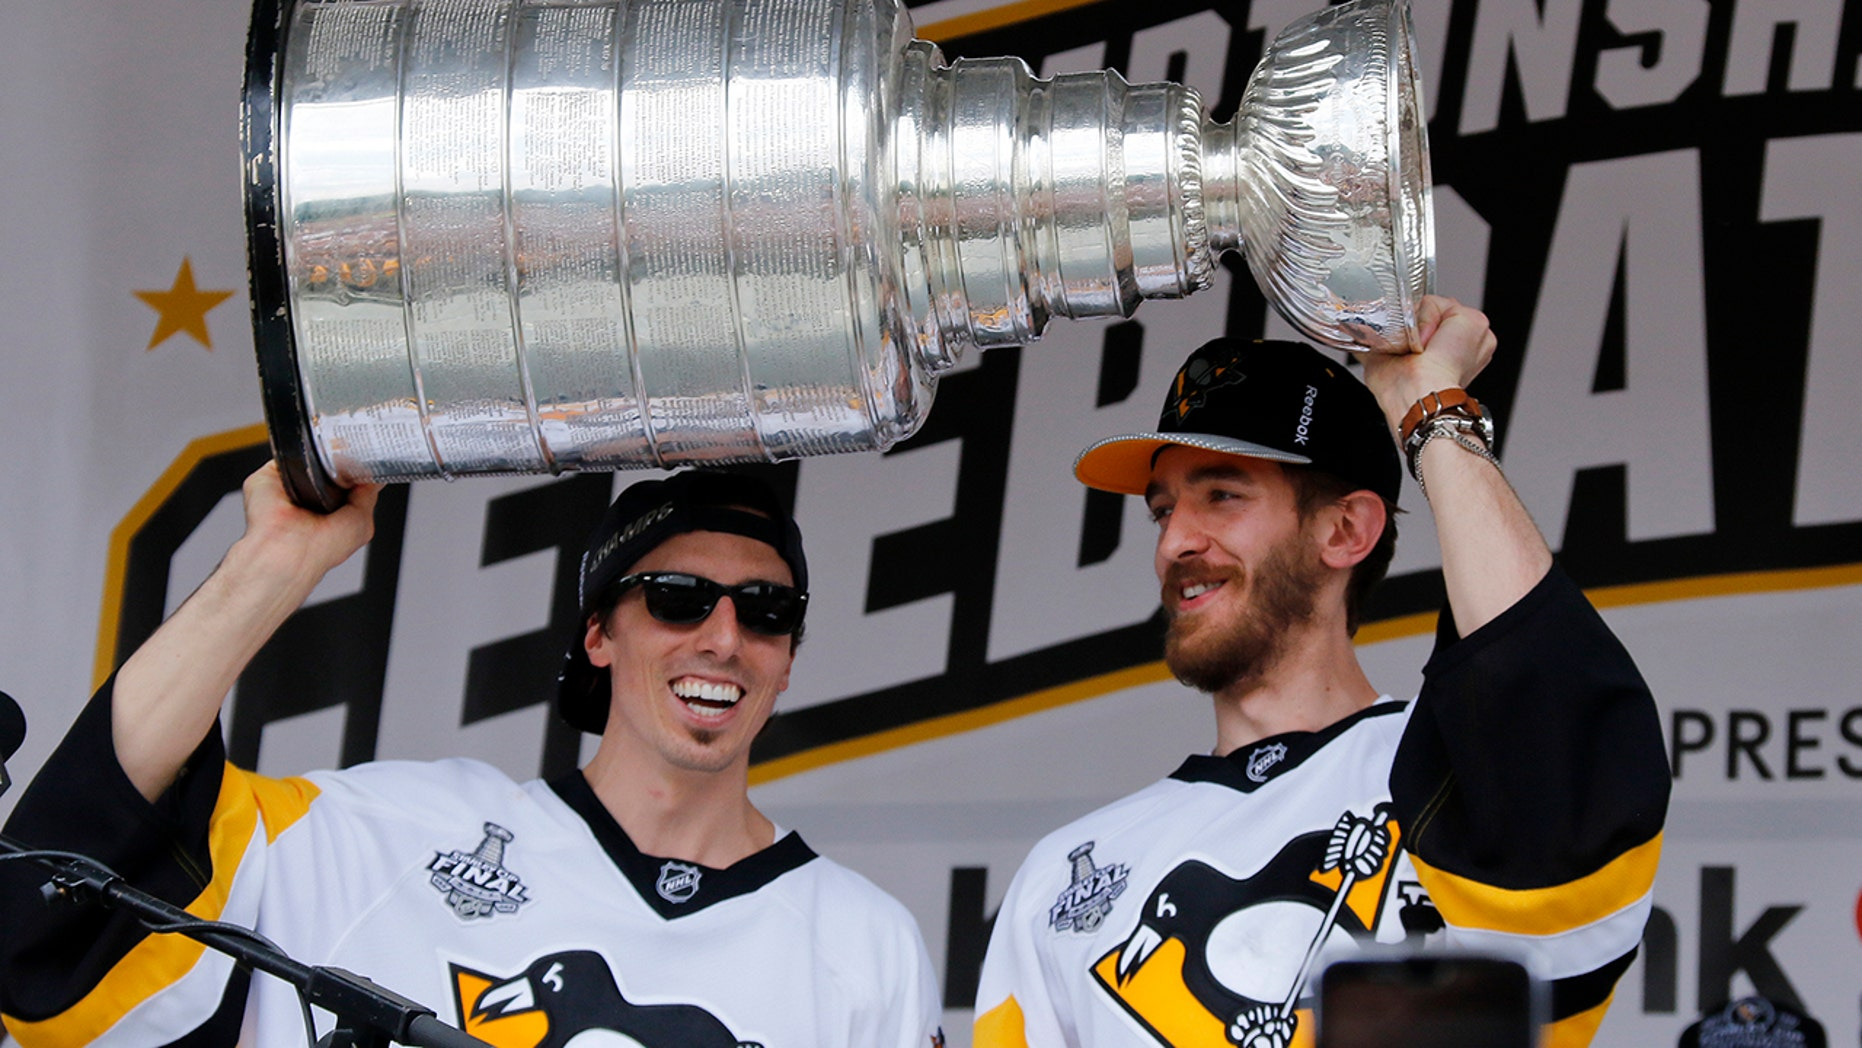 FILE - In this Wednesday, June 14, 2017, file photo, Pittsburgh Penguins goalies Marc-Andre Fleury, left, and Matt Murray hold the Stanley Cup on stage after riding in the Stanley Cup victory parade in Pittsburgh. Managing top goaltenders' schedules is the NHL's version of load management. Each of the past five Stanley Cup-winning goalies started fewer than 60 games in the regular season, along with three of the past five runners up. (AP Photo/Gene J. Puskar, File)